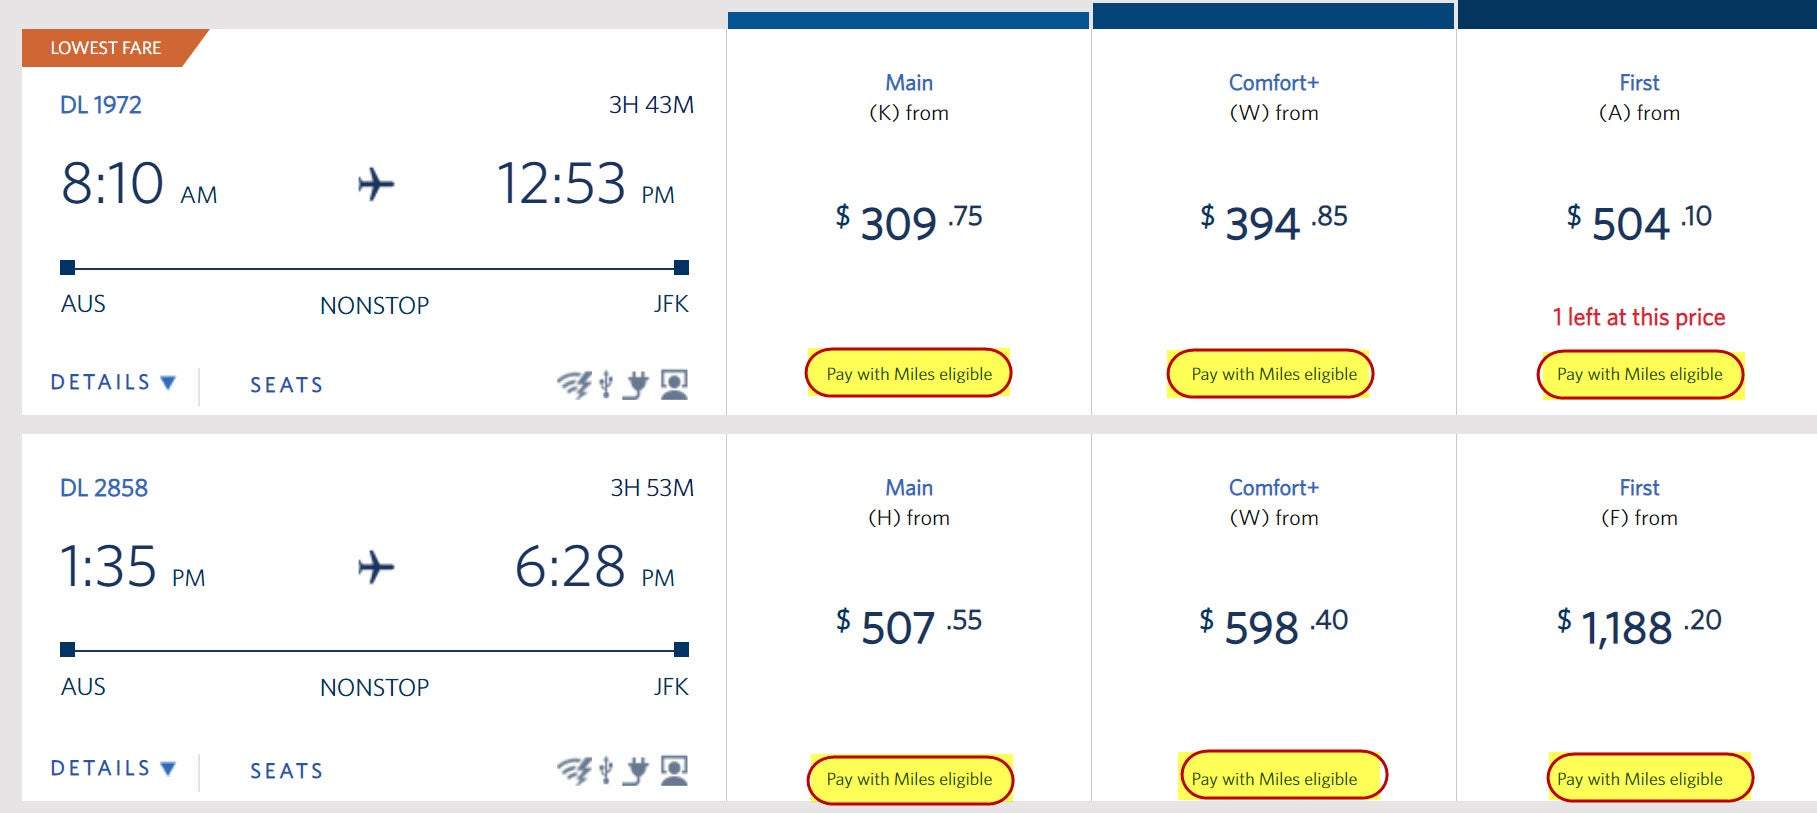 You Can Pay With Miles On Delta And Connection Flights Look For Eligible Under The Fare